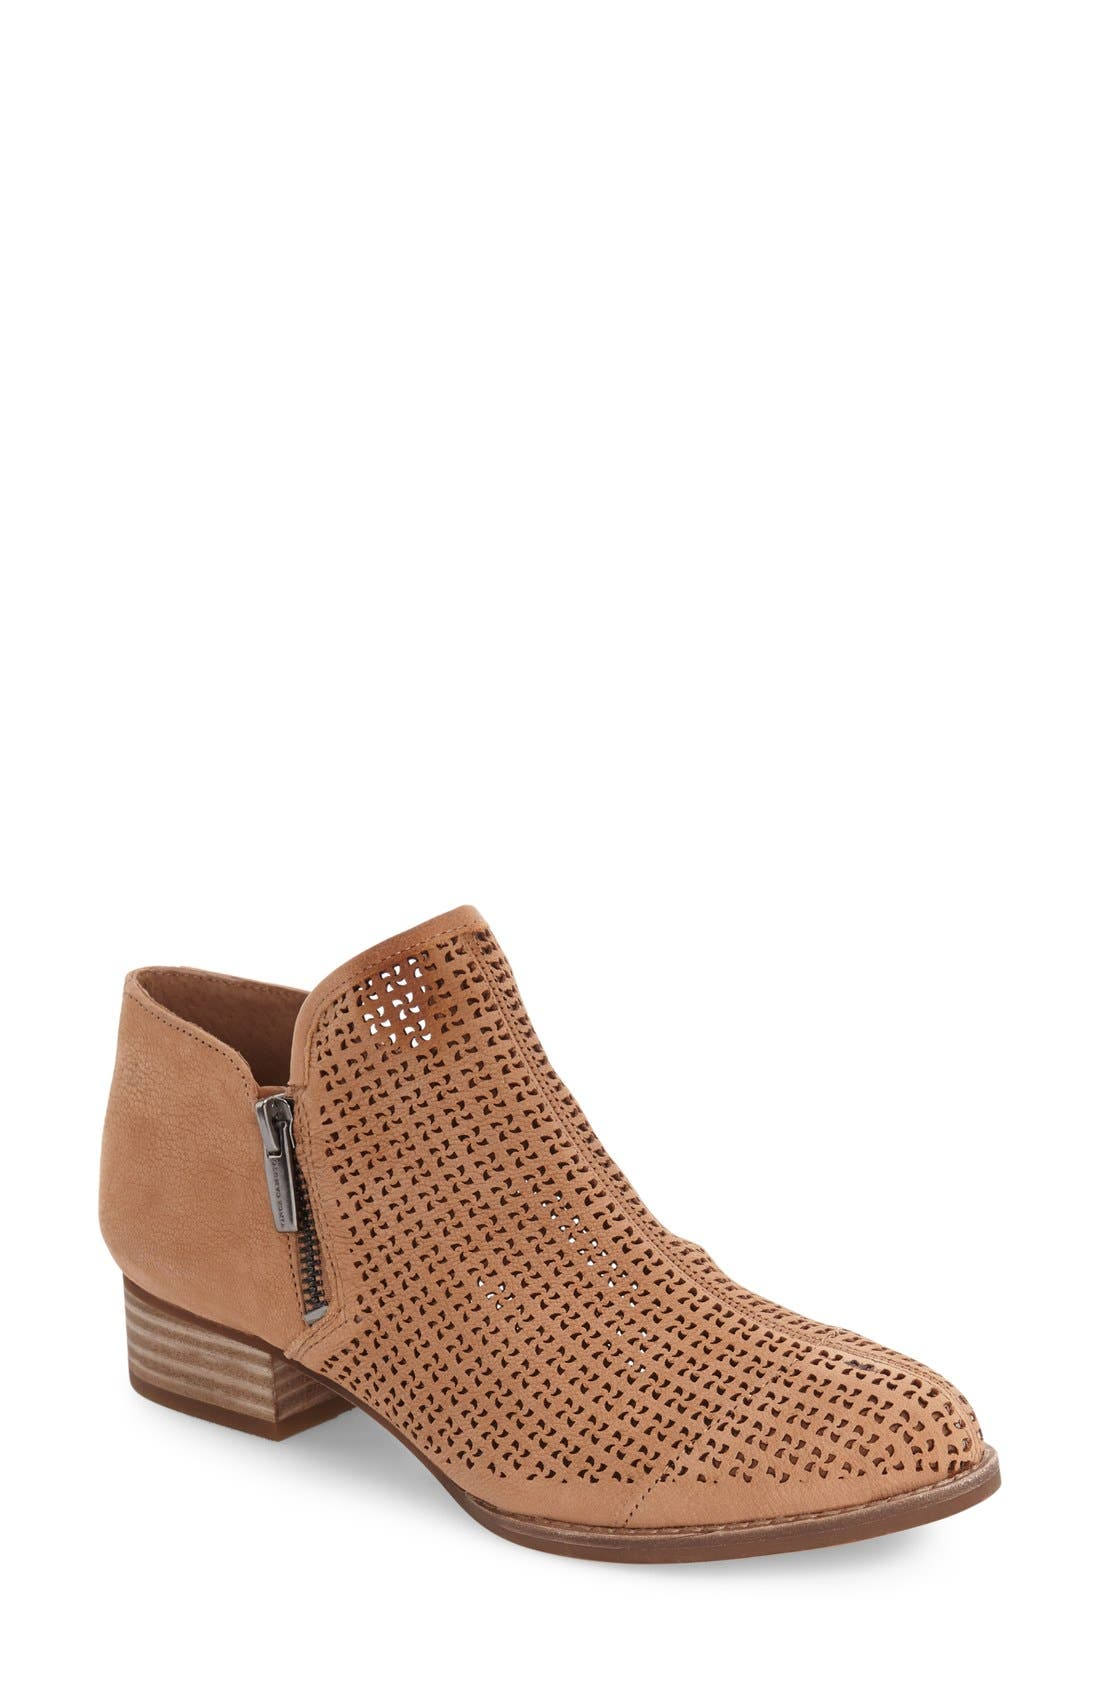 Main Image - Vince Camuto Canilla Laser Cut Bootie (Women)